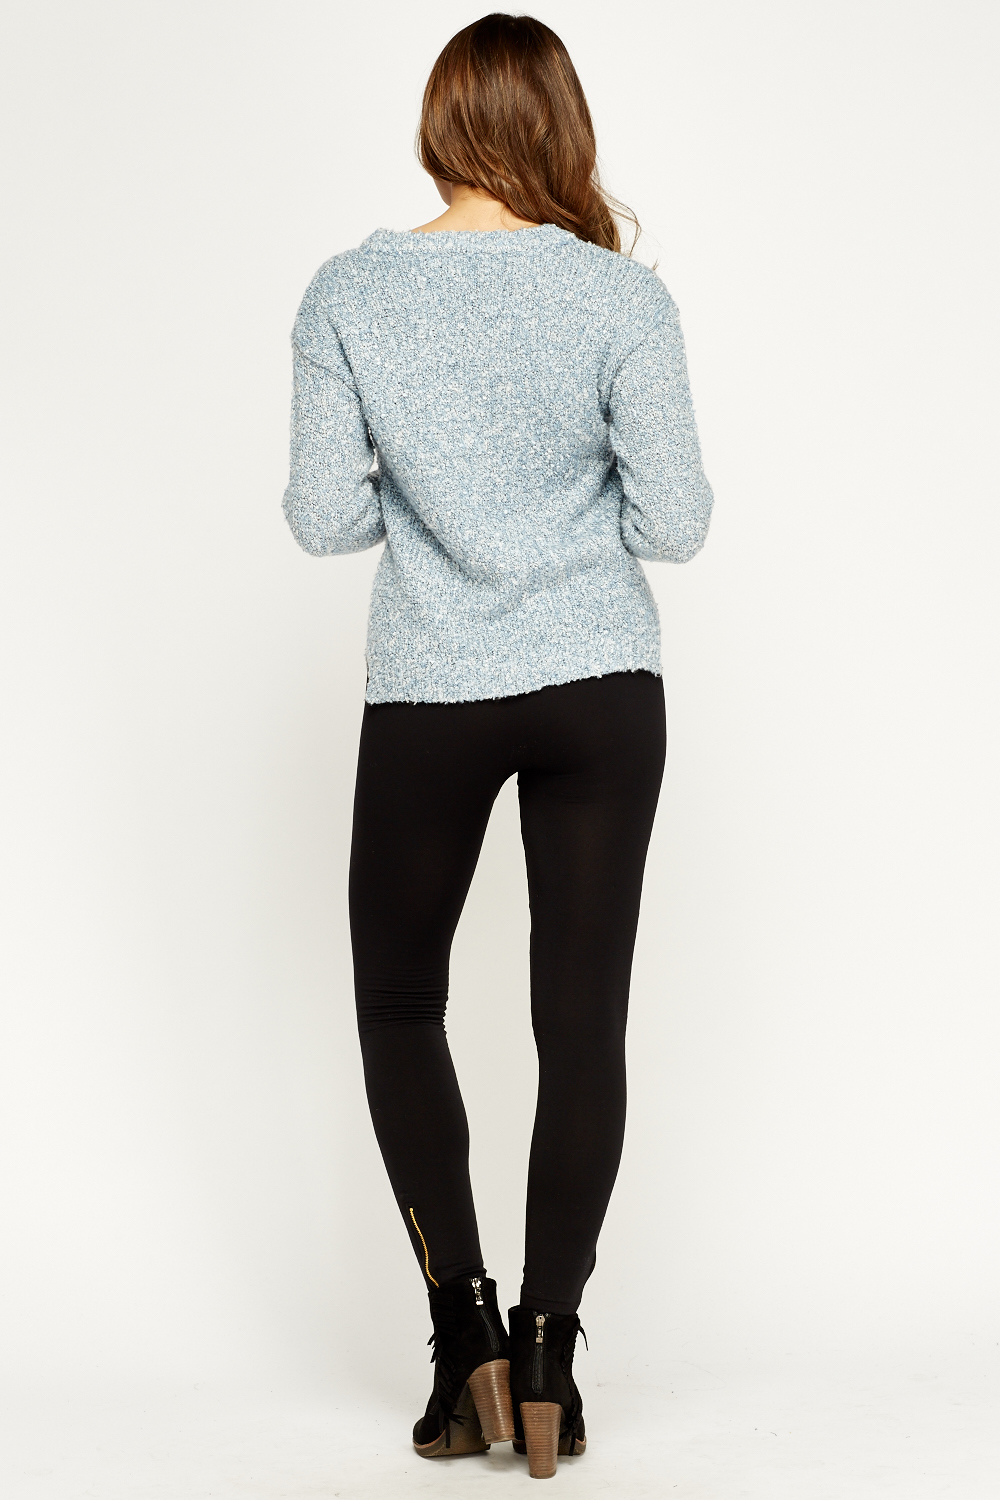 The 11 Warmest Fleece-Lined Leggings for Cold-Weather Workouts. They're like the fleece jacket your mom handmade in the '90s. Except sexy. And sporty.